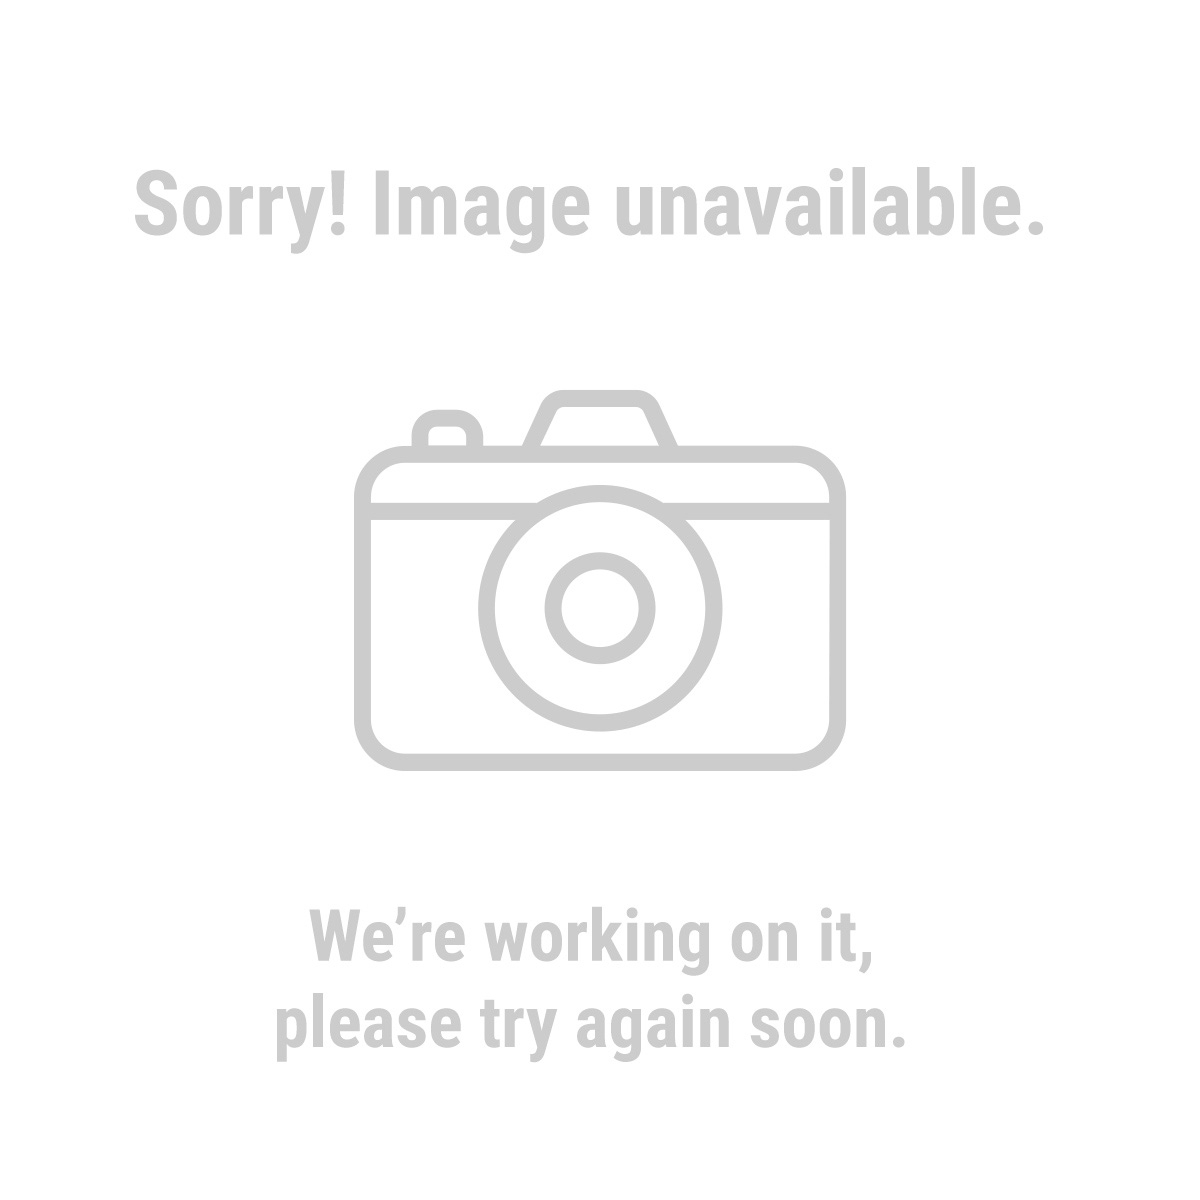 90746 $50 Harbor Freight Gift Card